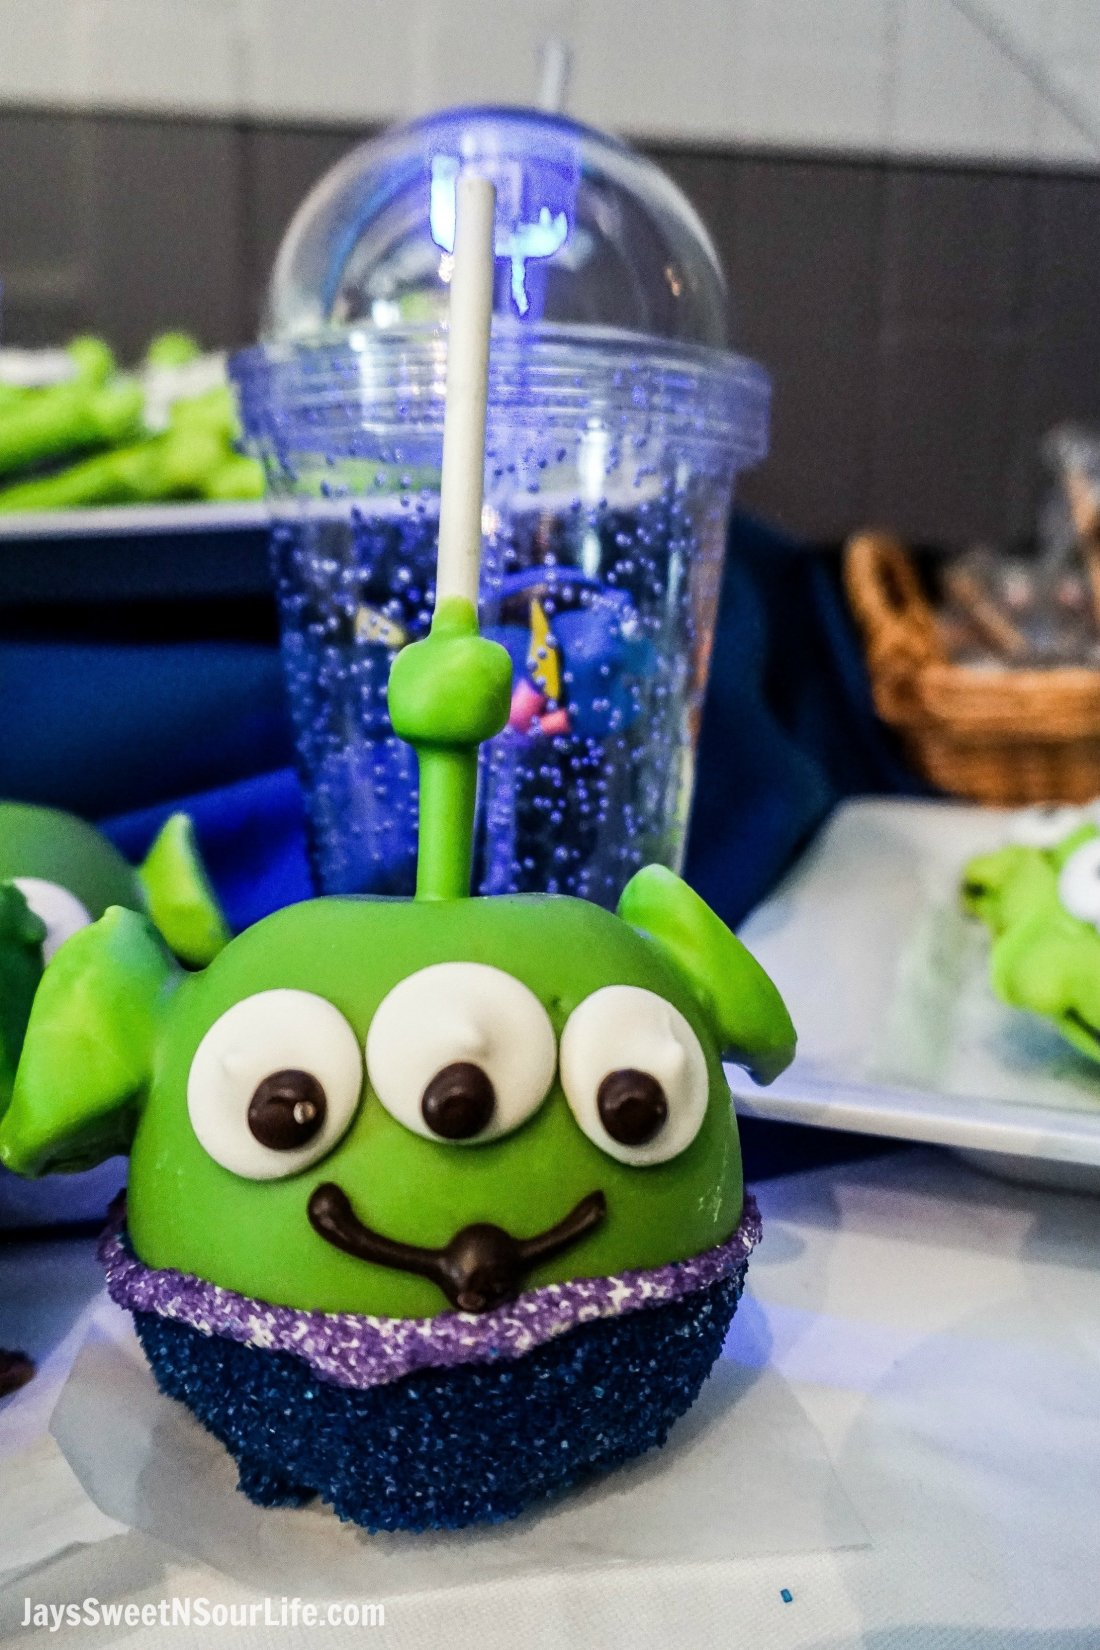 Pixar Fest Alien Cake Pop. Pixar Fest at Disneyland runs from April 13 through September 3rd.